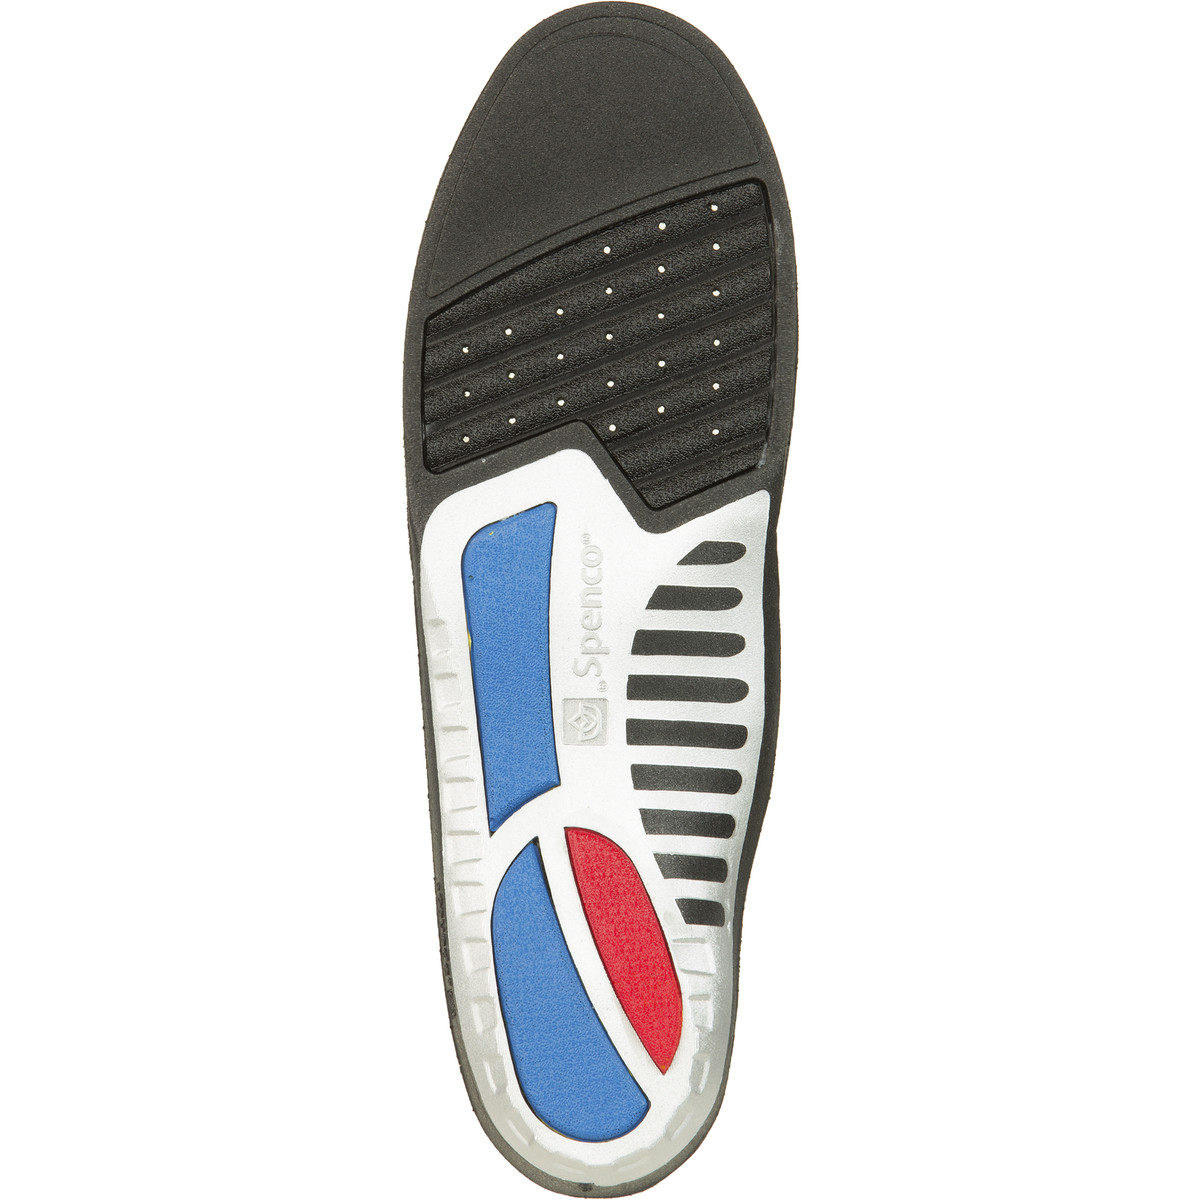 photo of a Spenco insole